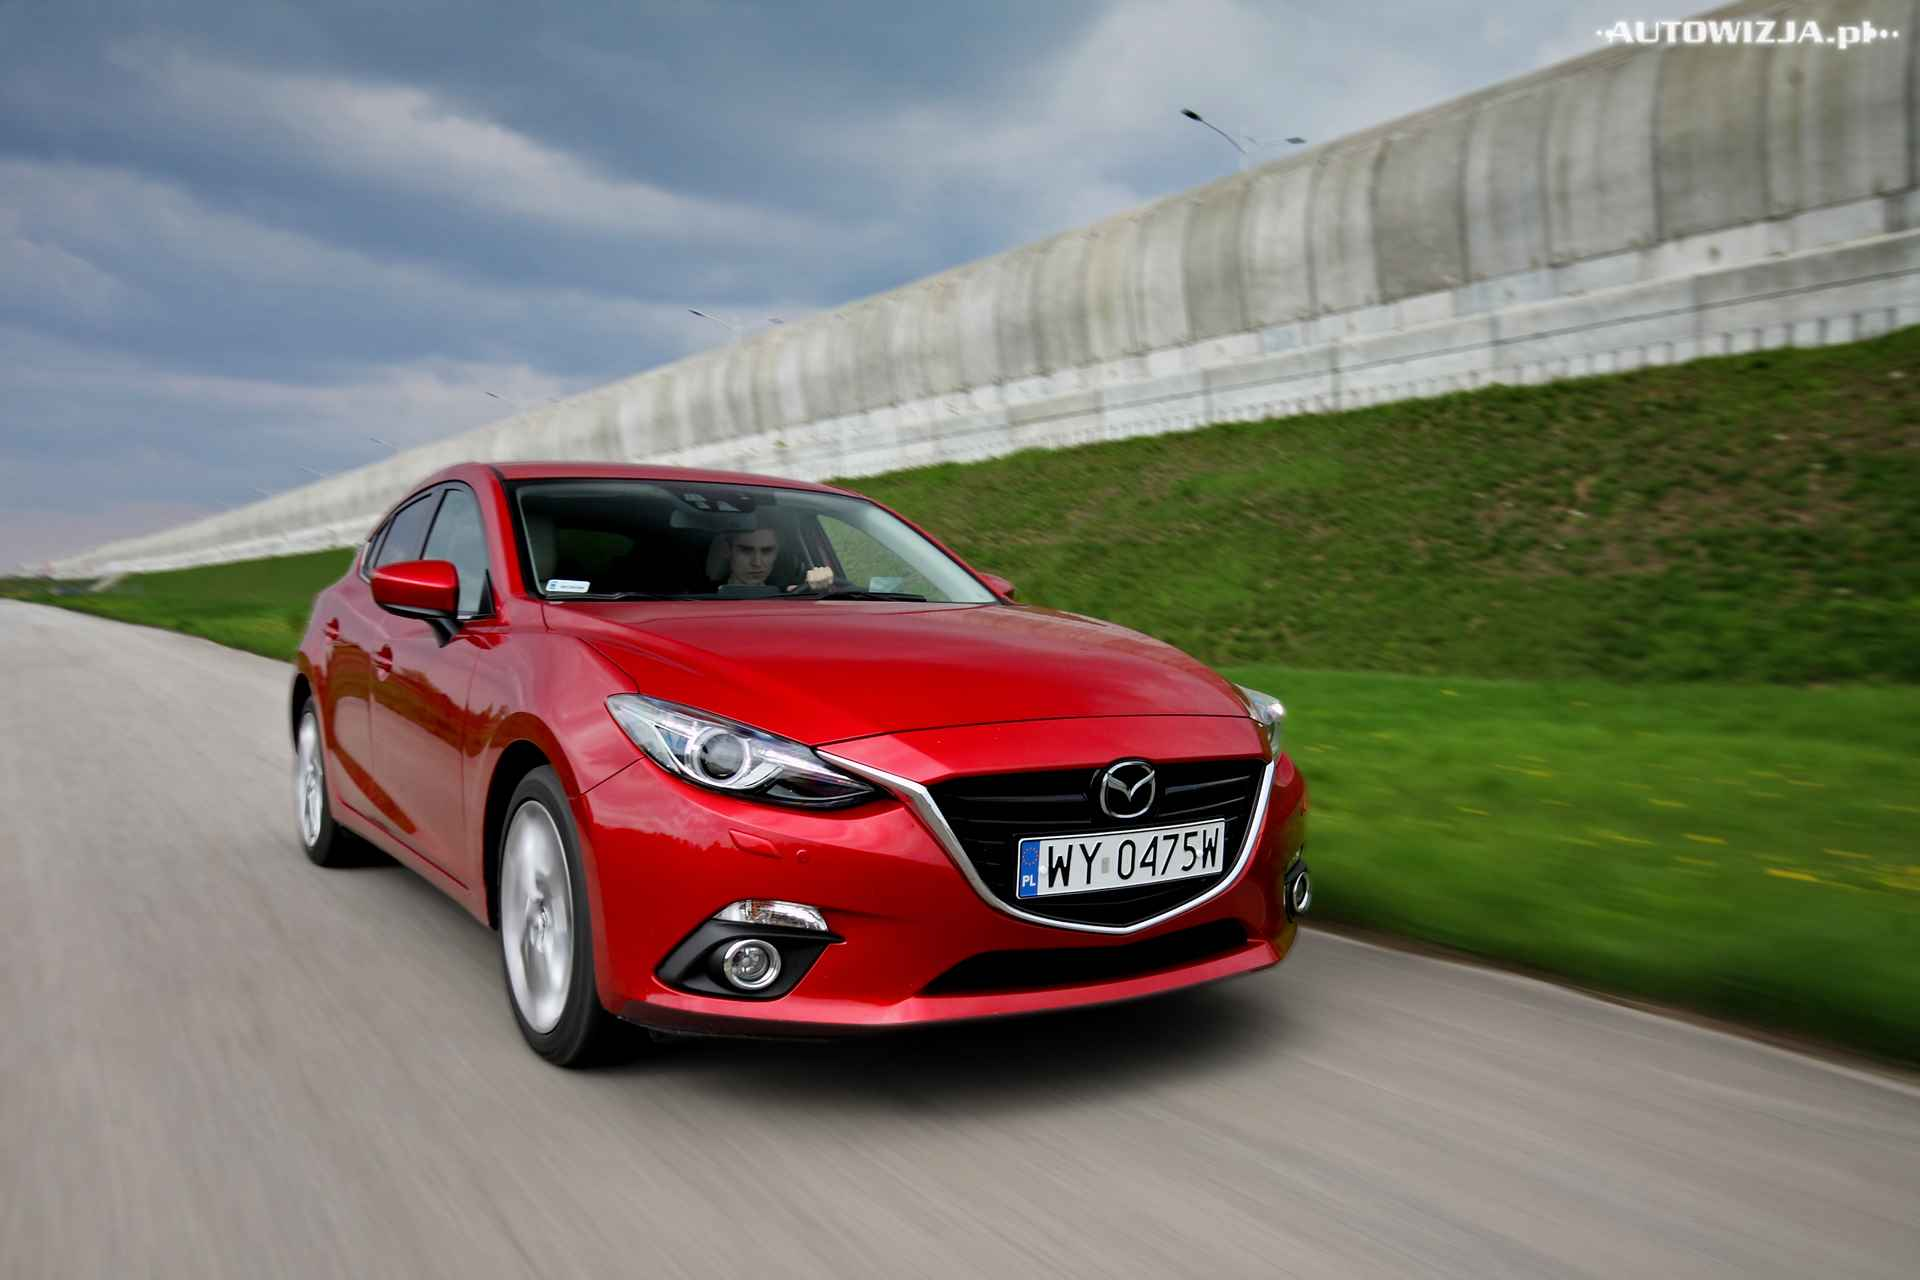 mazda 3 skyactiv g 2 0 165km test motoryzacja. Black Bedroom Furniture Sets. Home Design Ideas